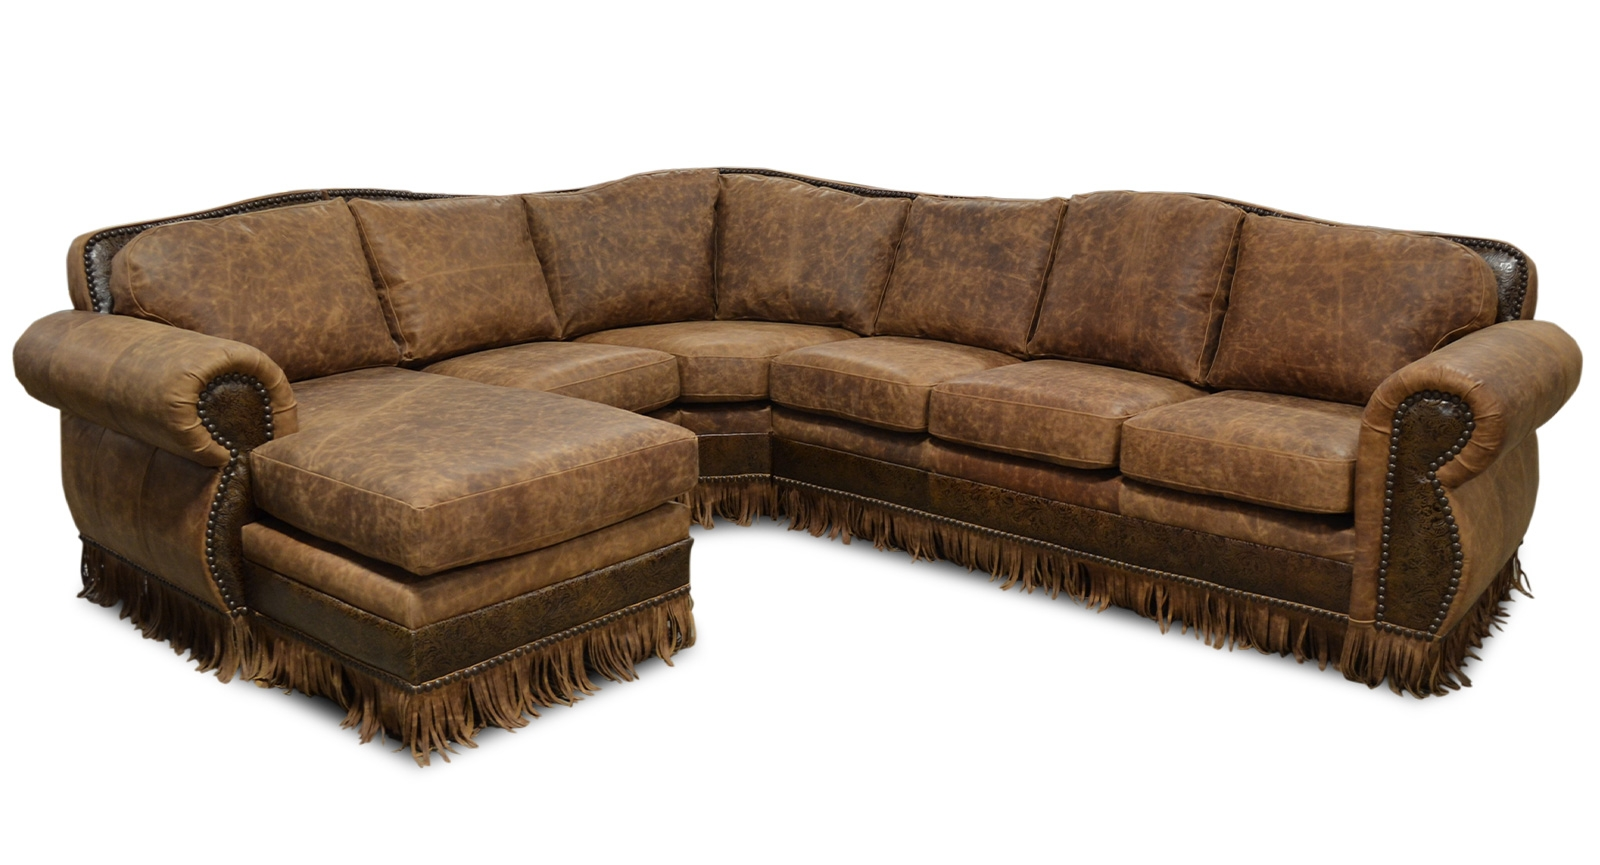 Waltz Sectional Sofa